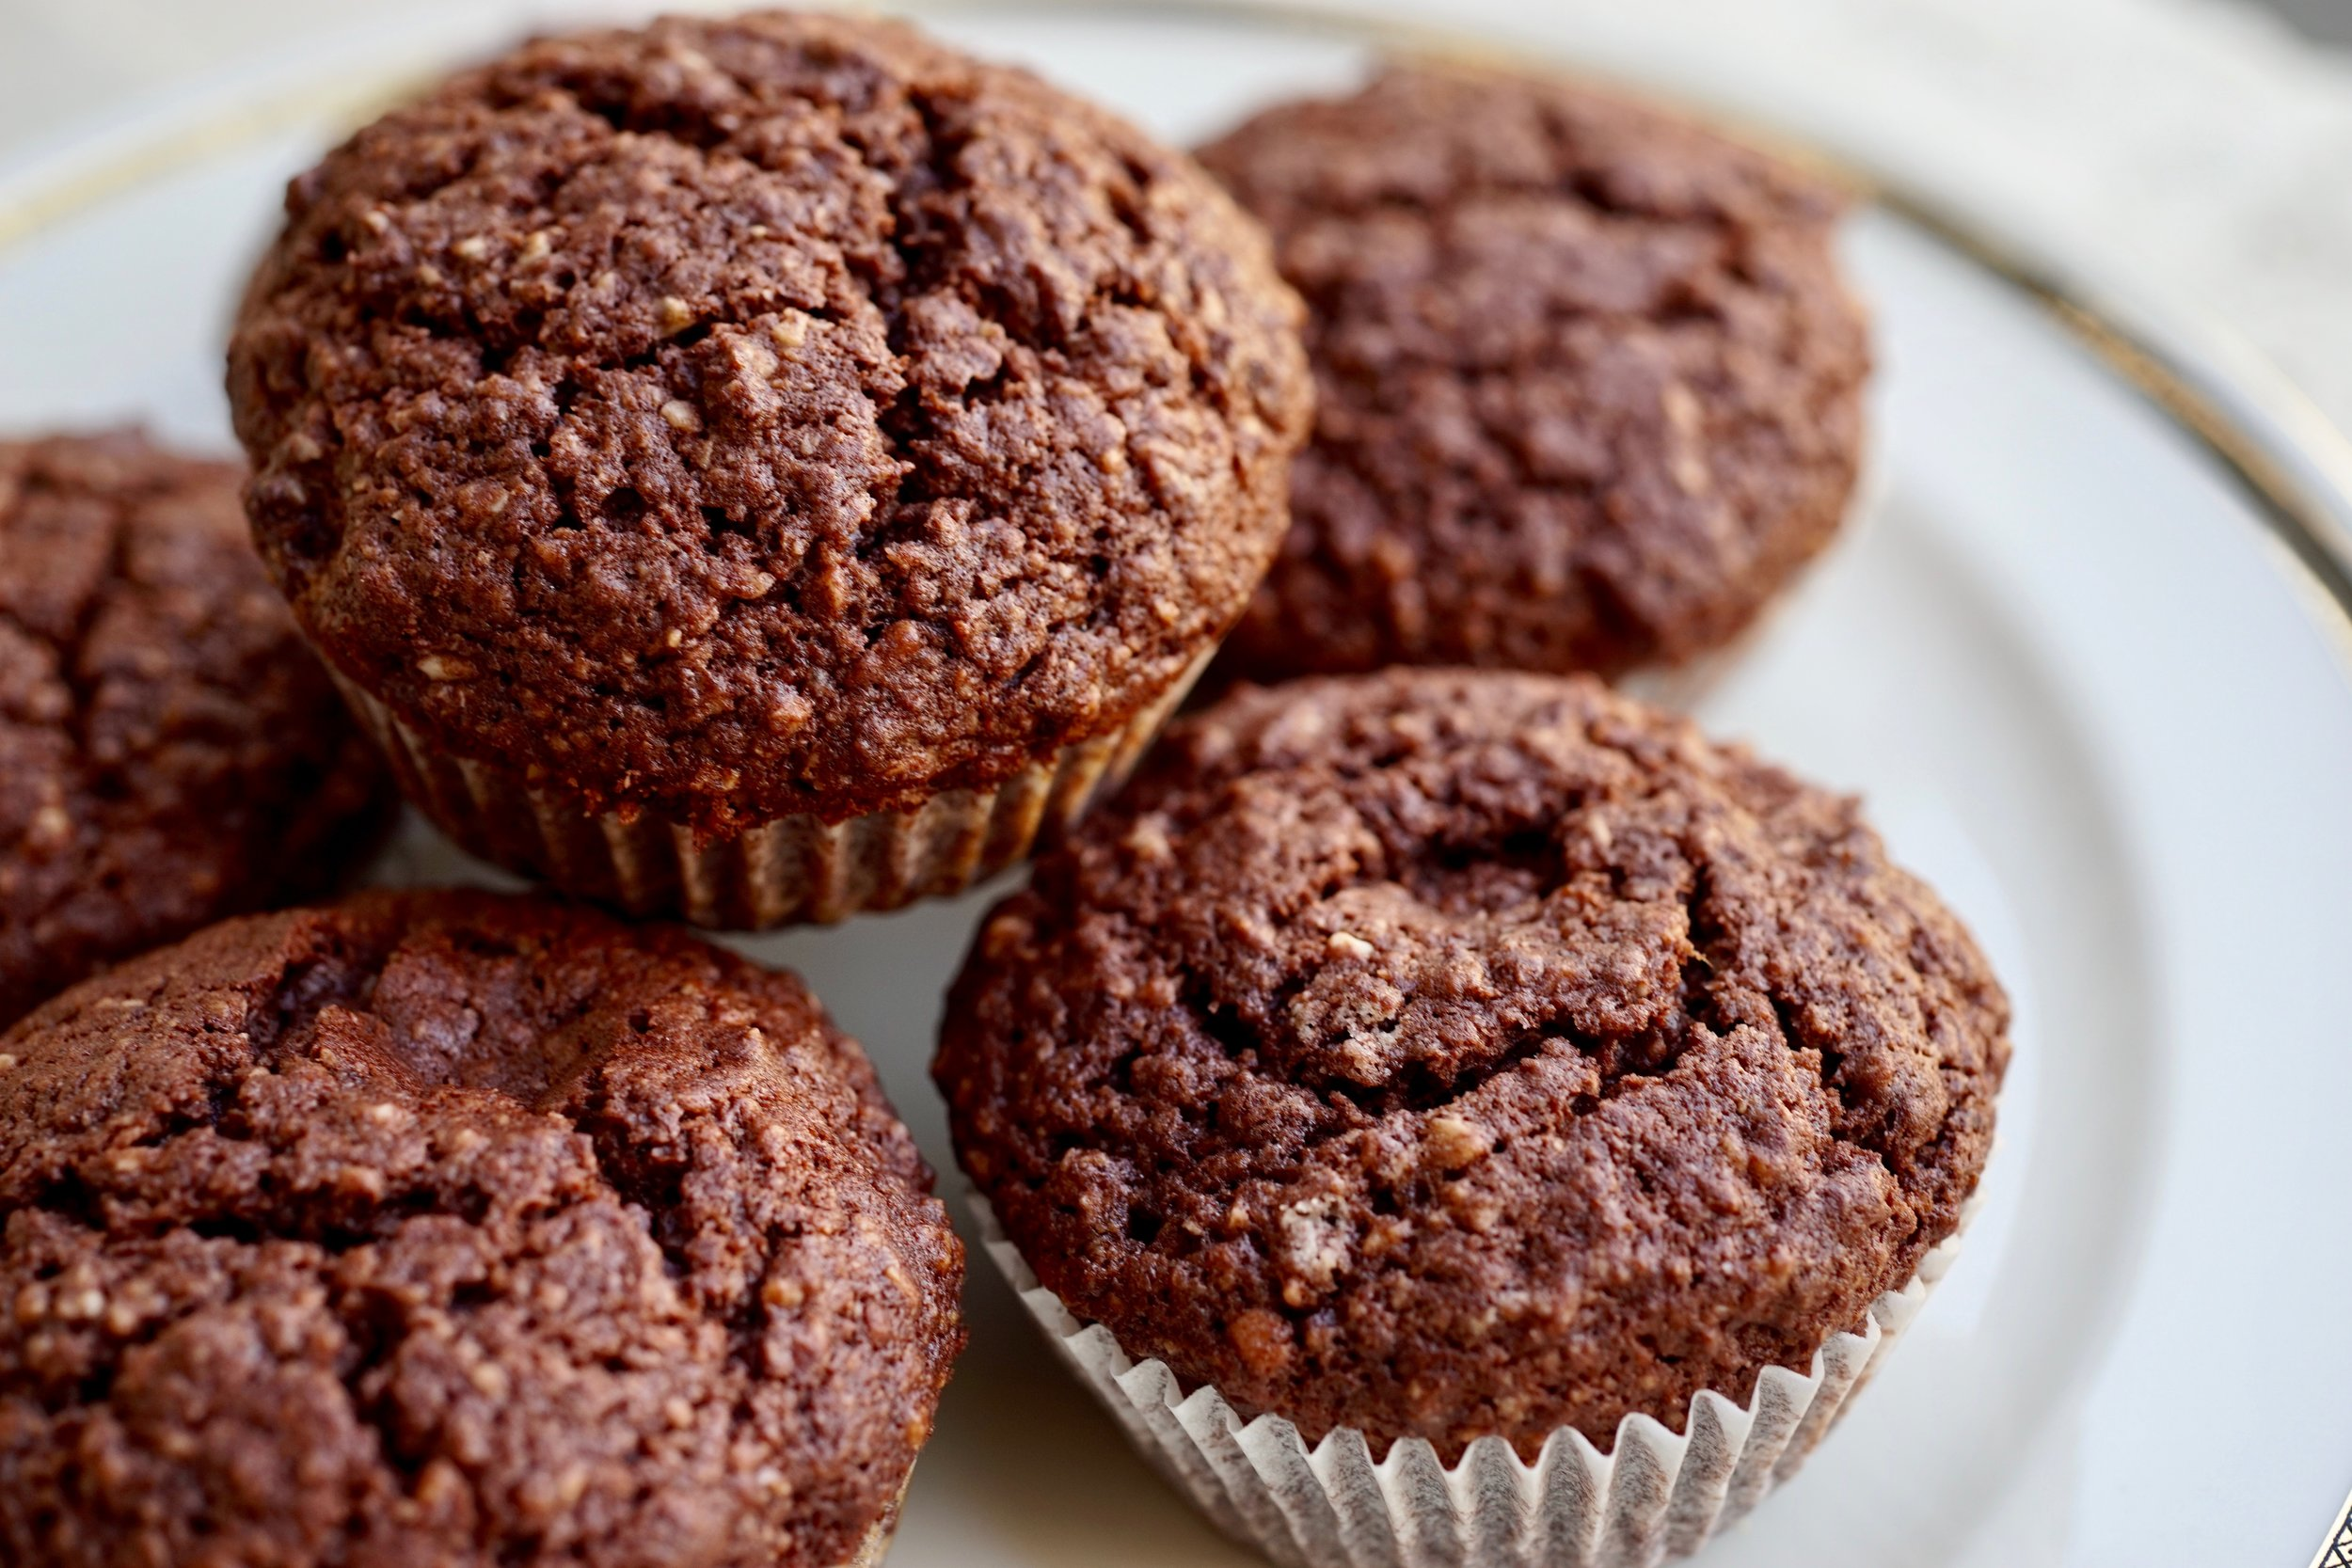 Something different... - St Galler Kloster Muffins